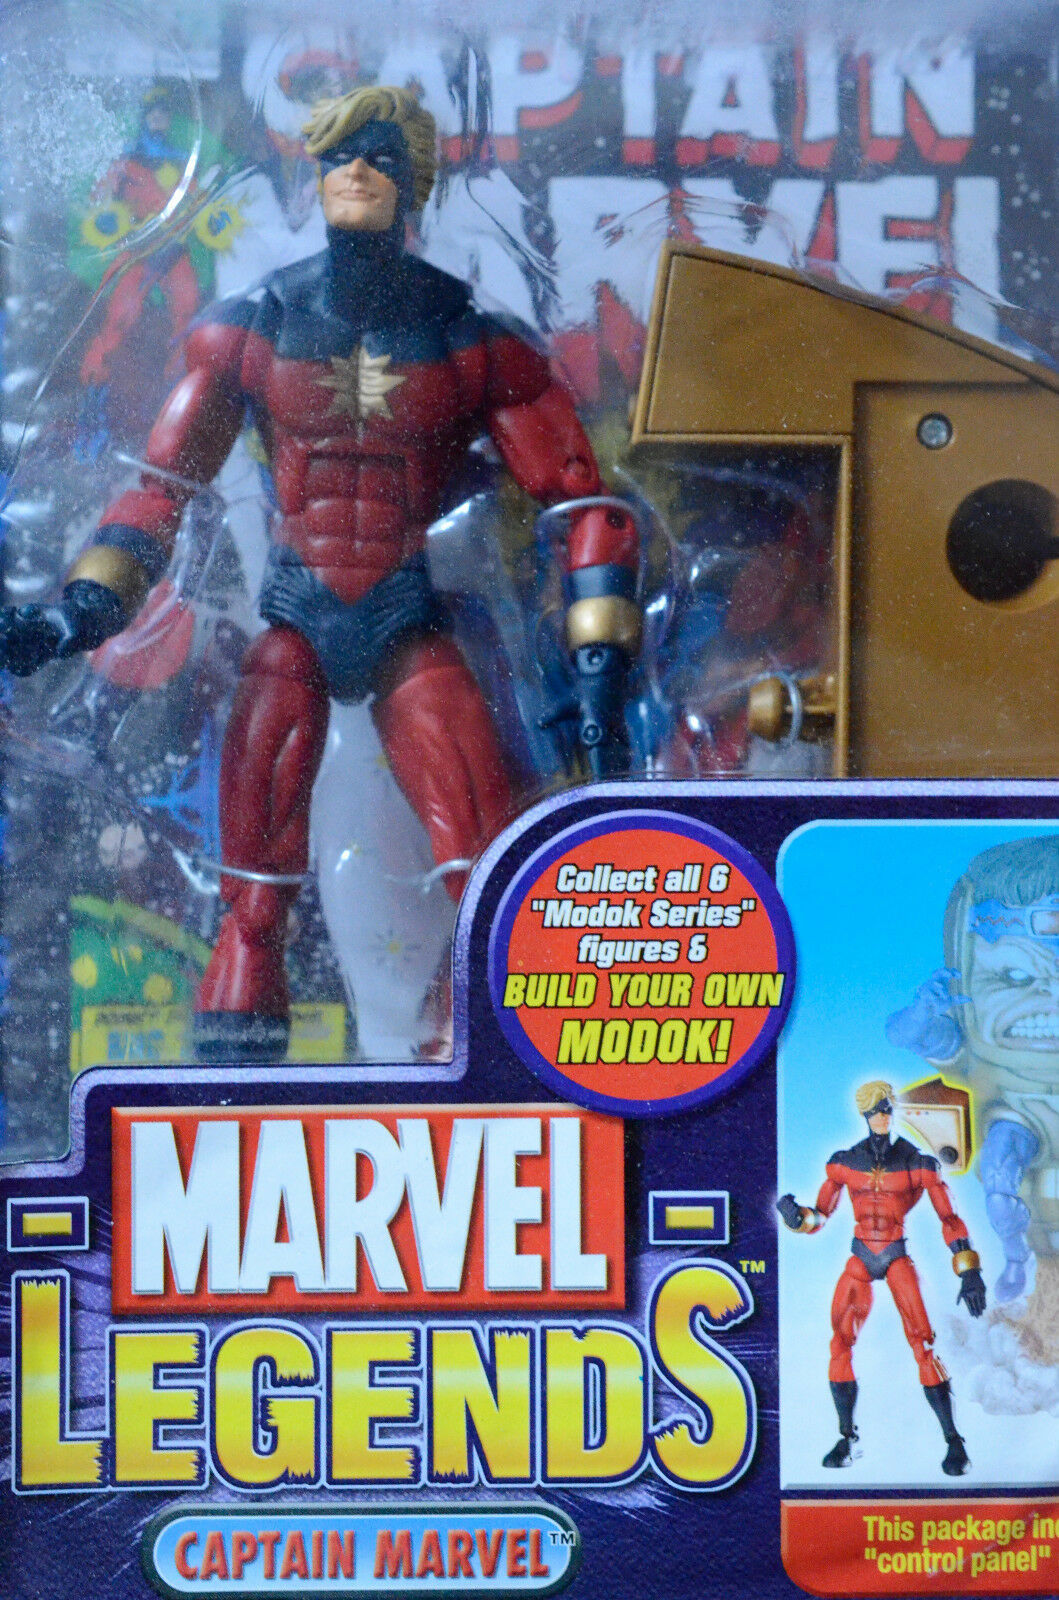 Captain marvel marvel legends comics comics comics 6 inches with modok part new 4a9101